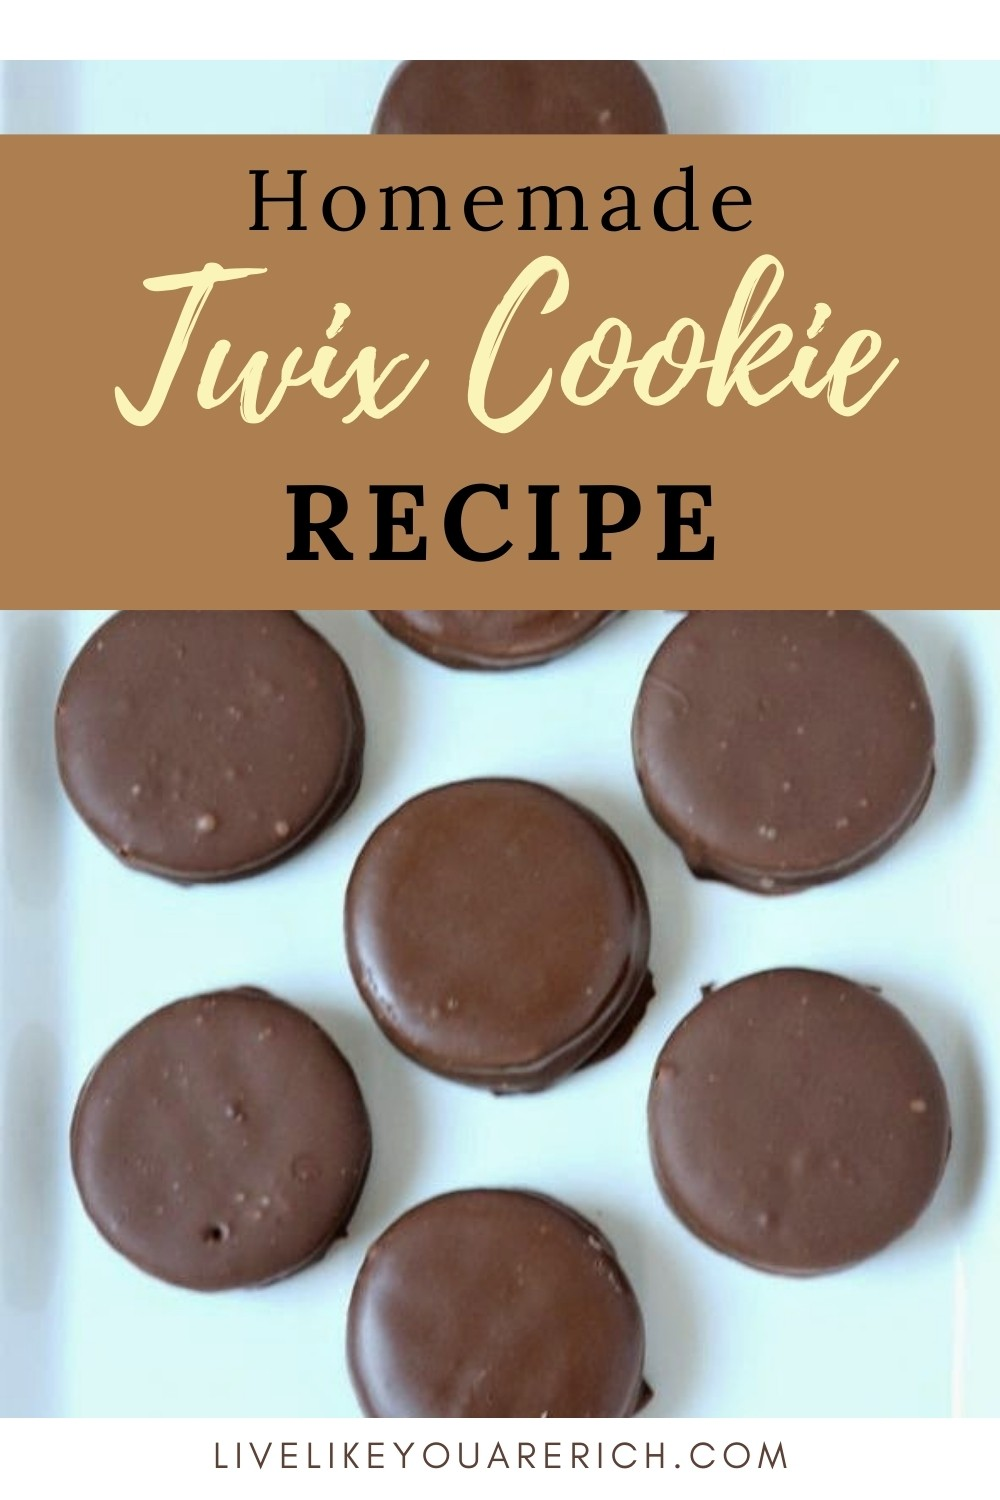 This no-bake Twix cookie recipe is super simple, quick, easy to make, requires only three ingredients, and is delicious! #twix #twixcookie